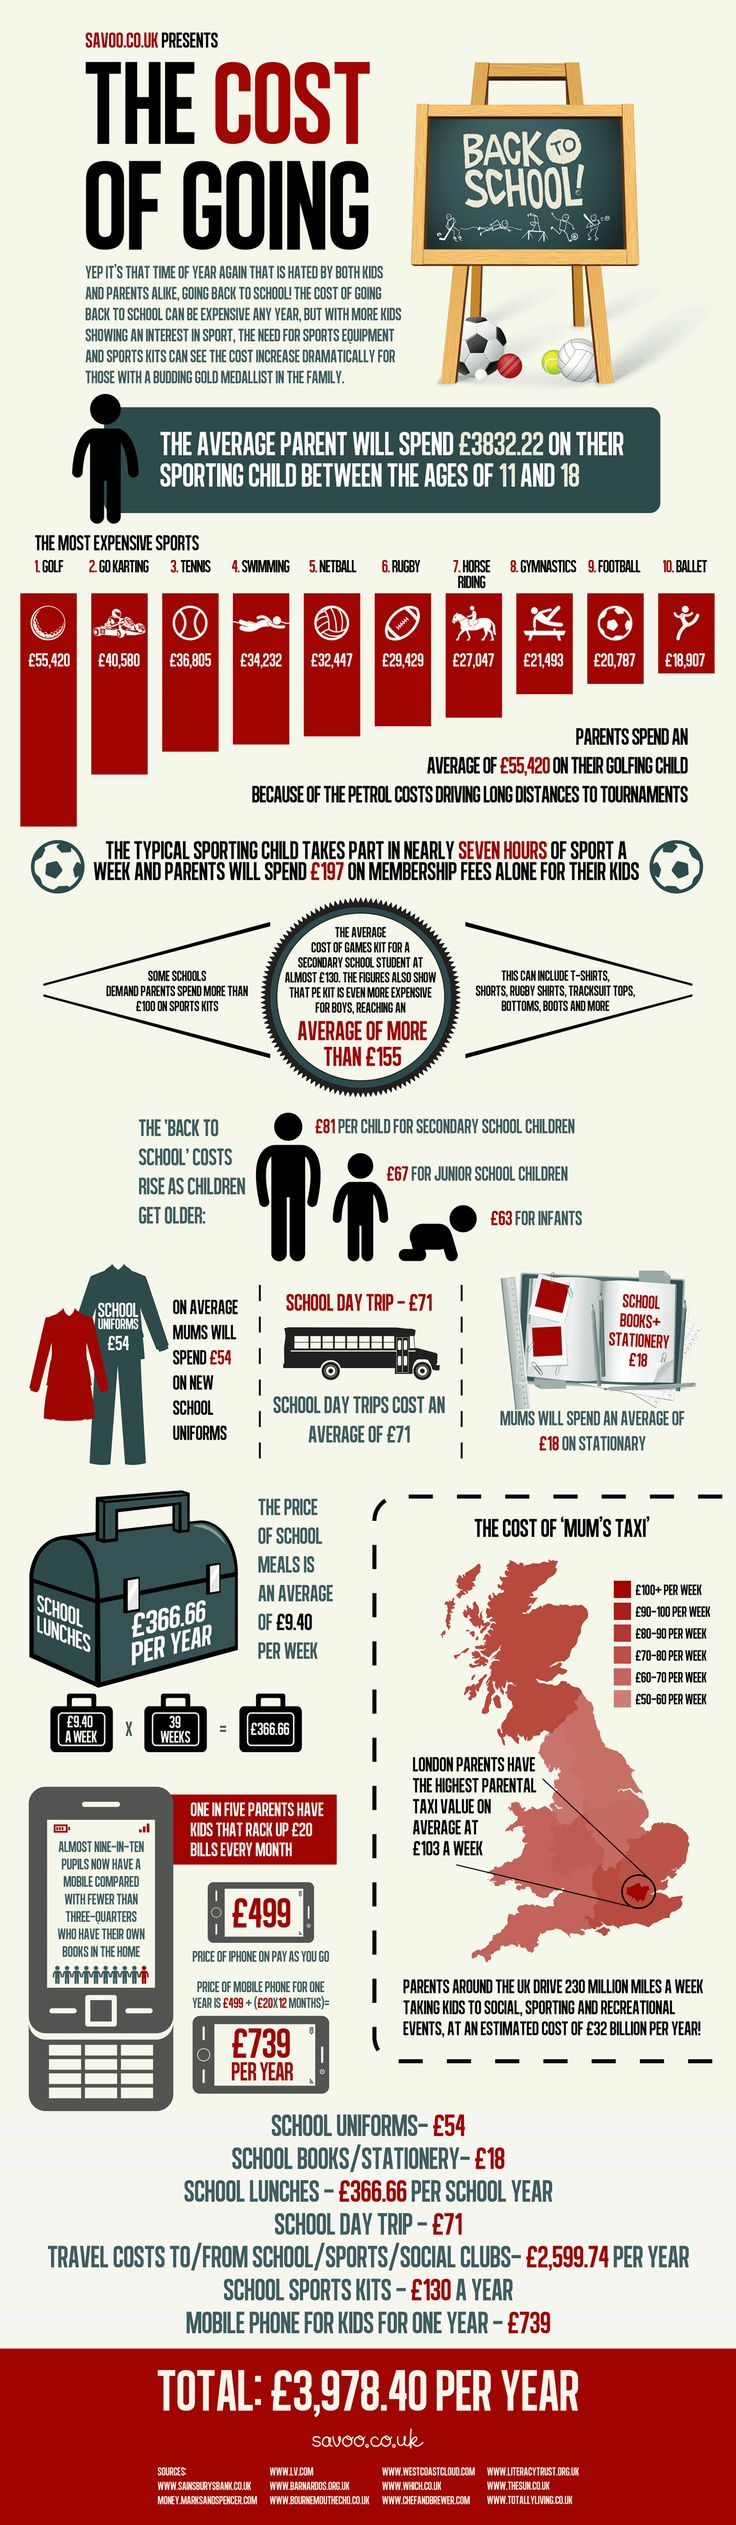 The Cost Of Going Back To School [INFOGRAPHIC] #cost #backtoschool